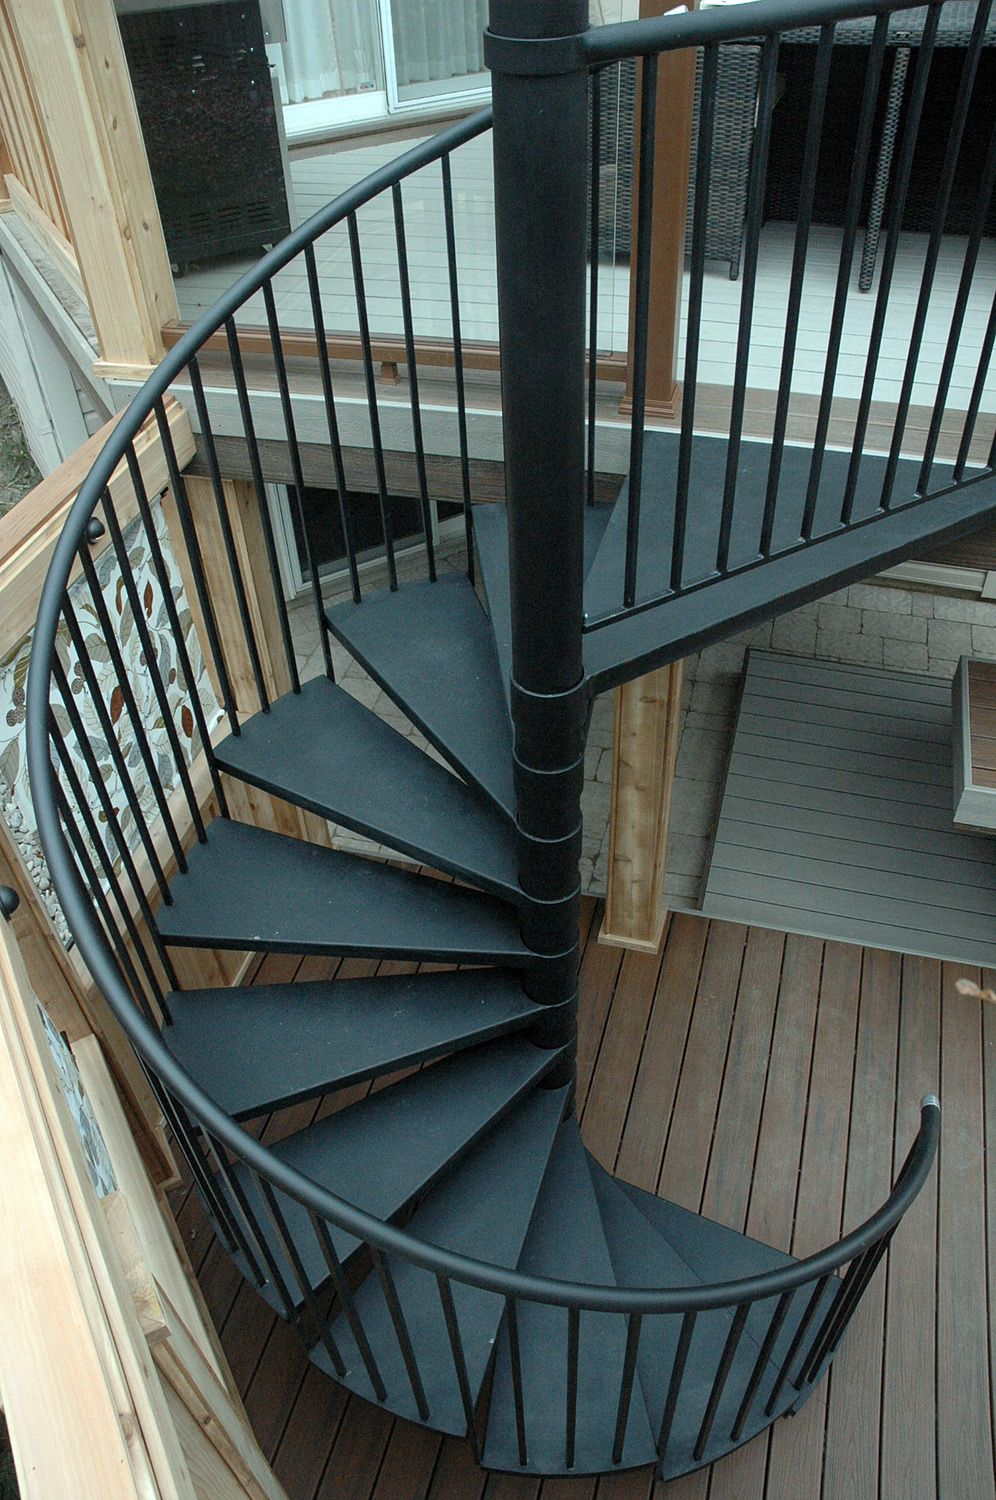 Best The Spiral Staircase From Decked Out Episode The Spiral 400 x 300